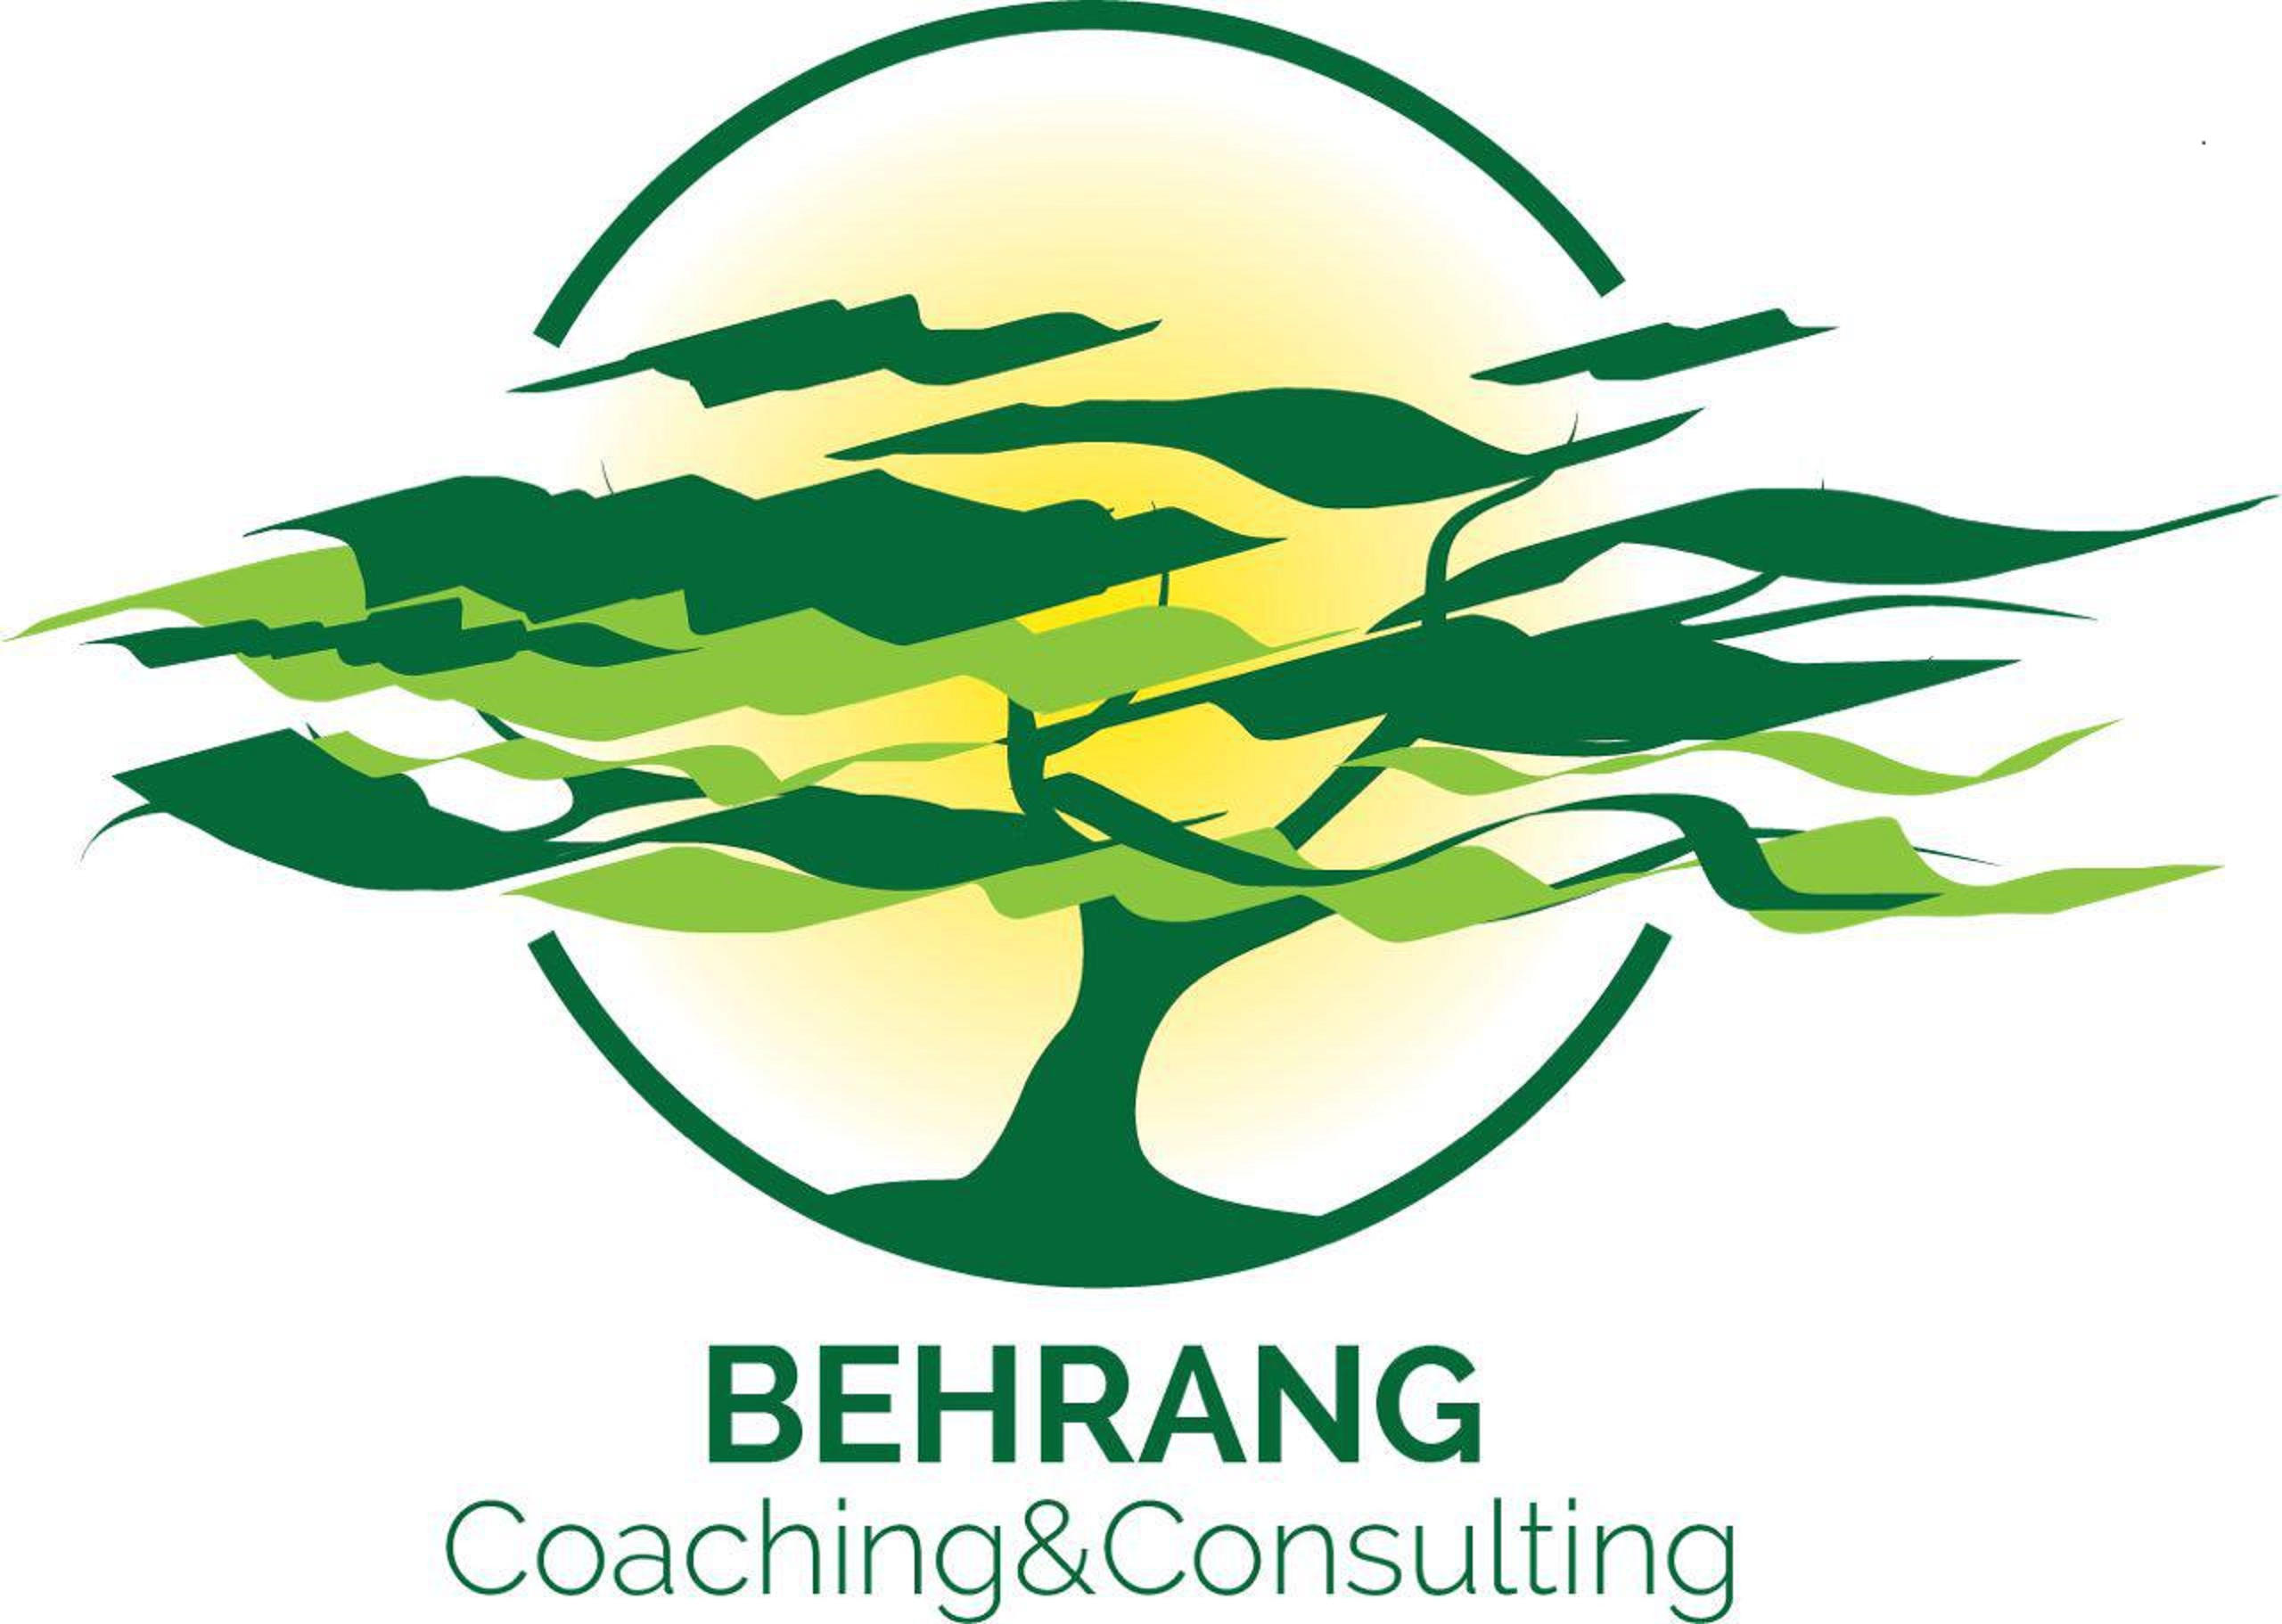 Behrang Coaching and Consulting